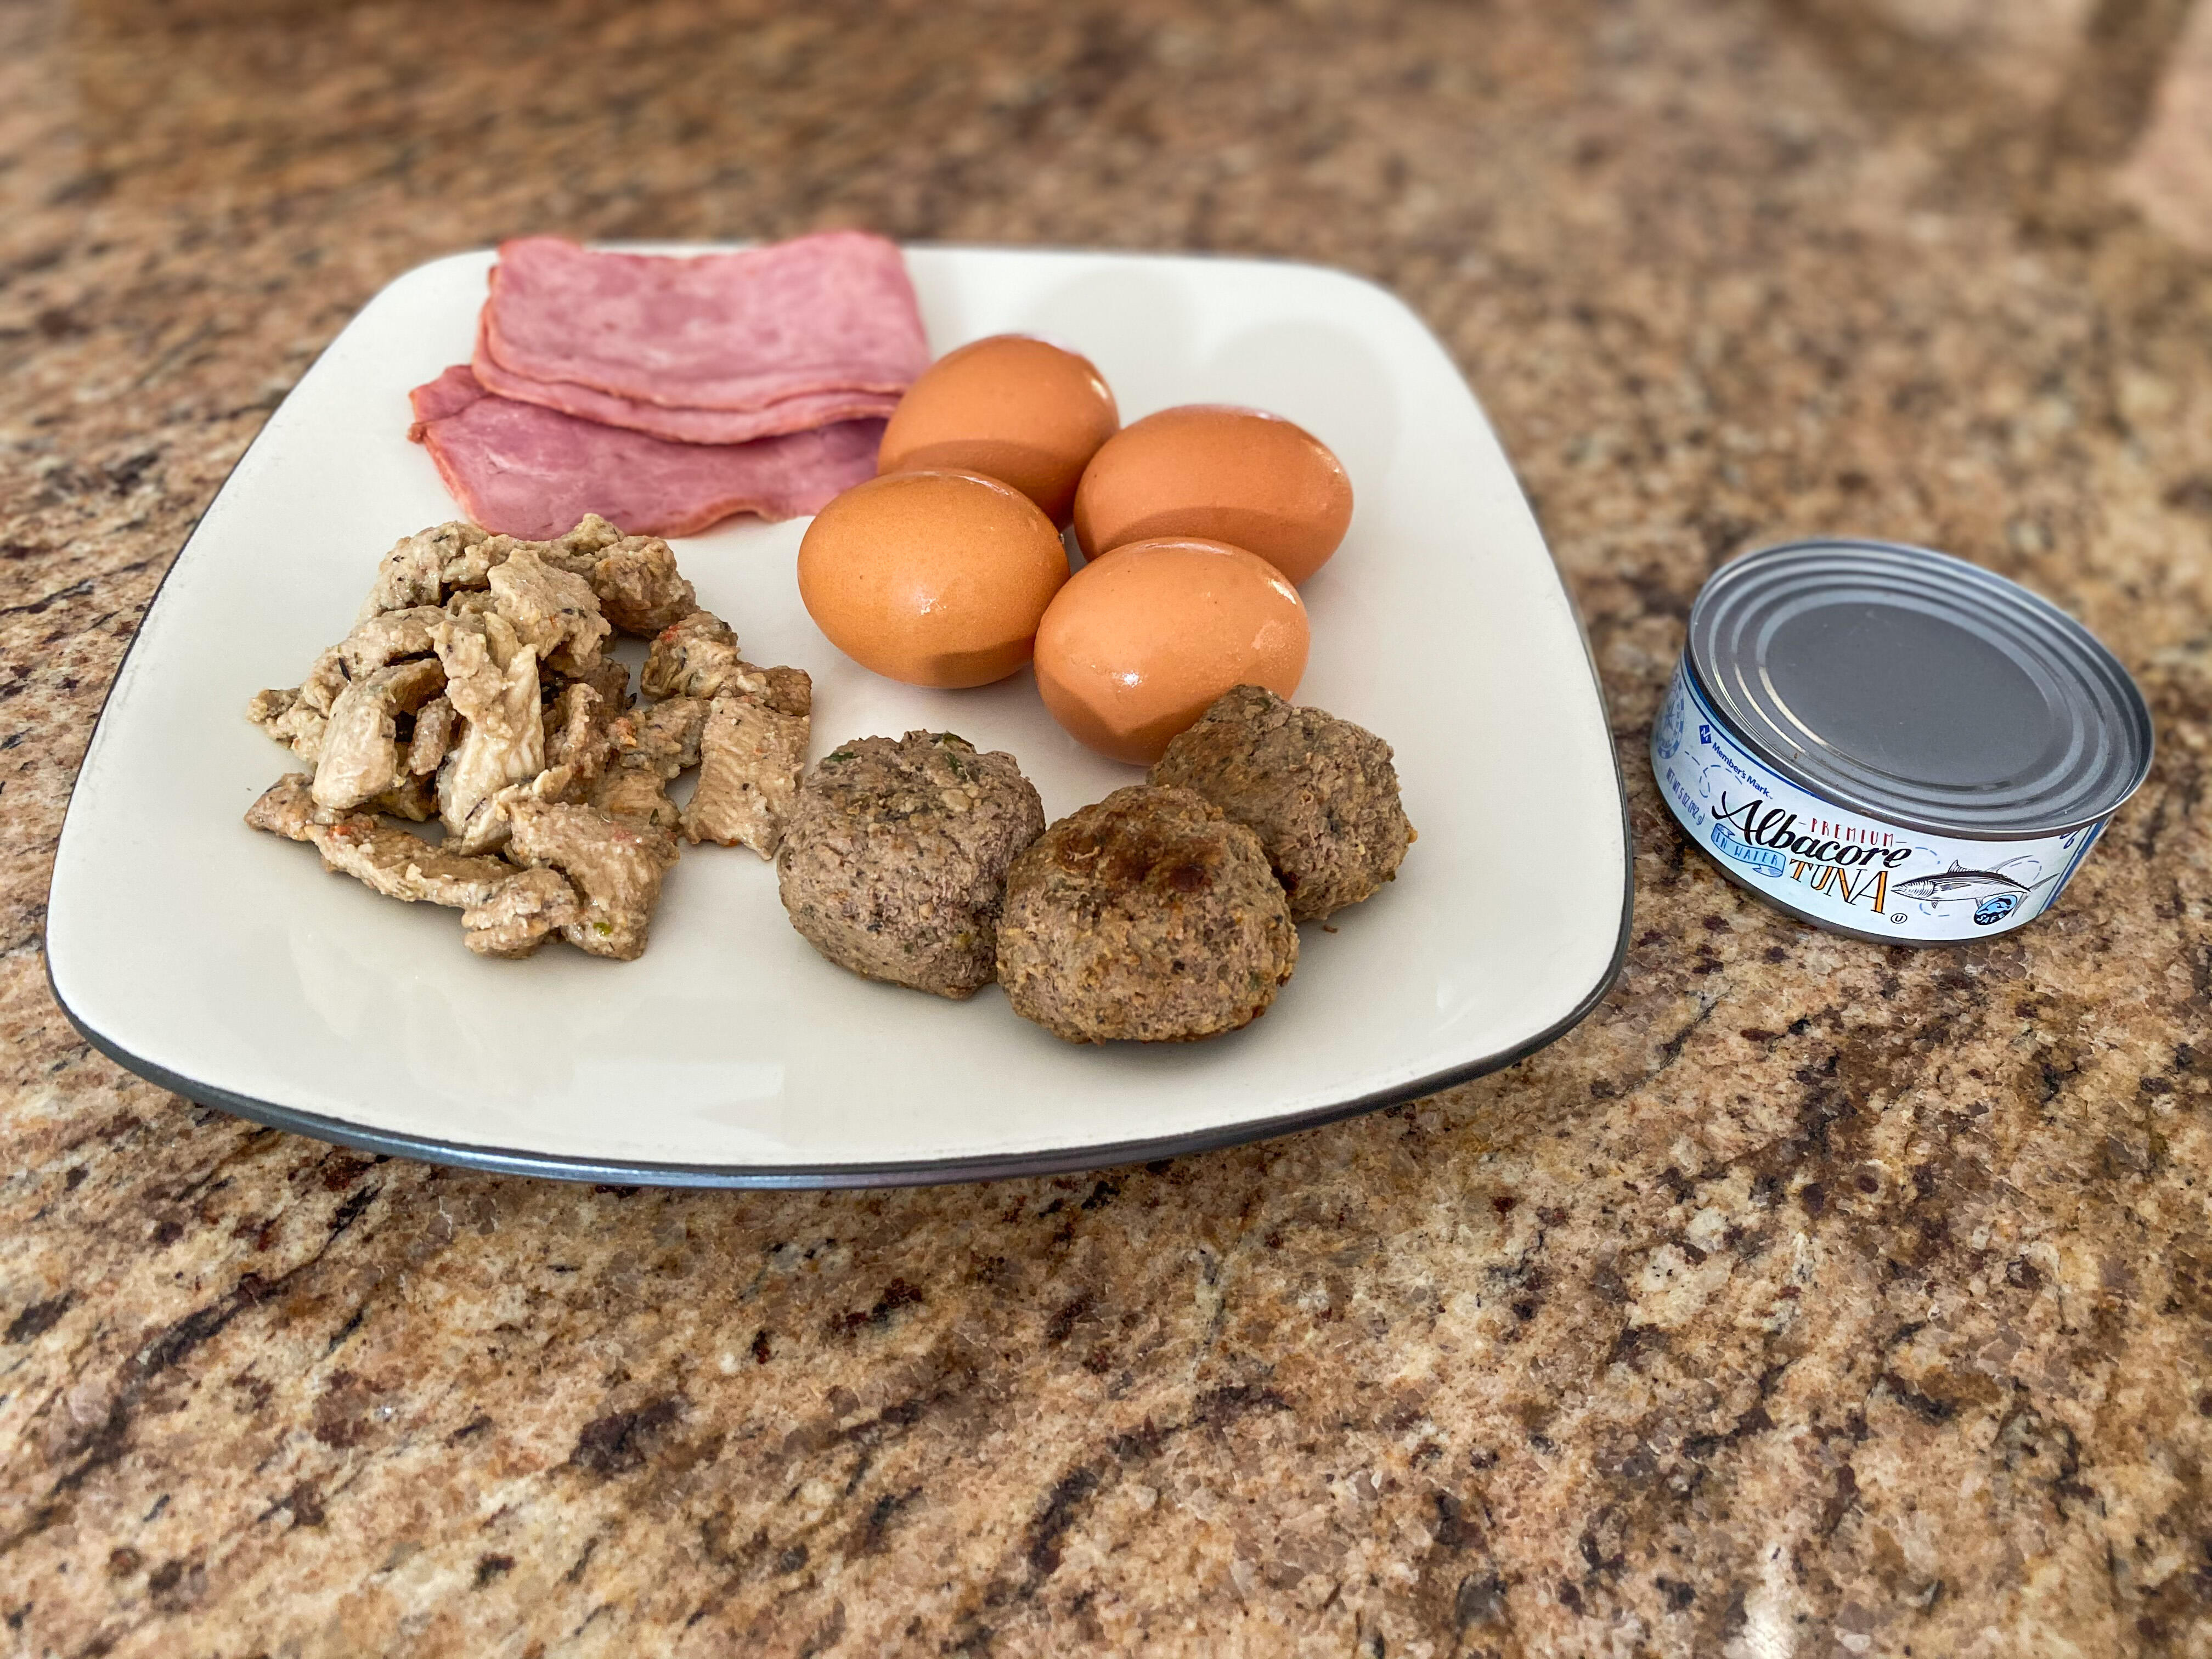 A spread of food containing turkey, ham, eggs, tuna, and beef depicting 100 grams of protein